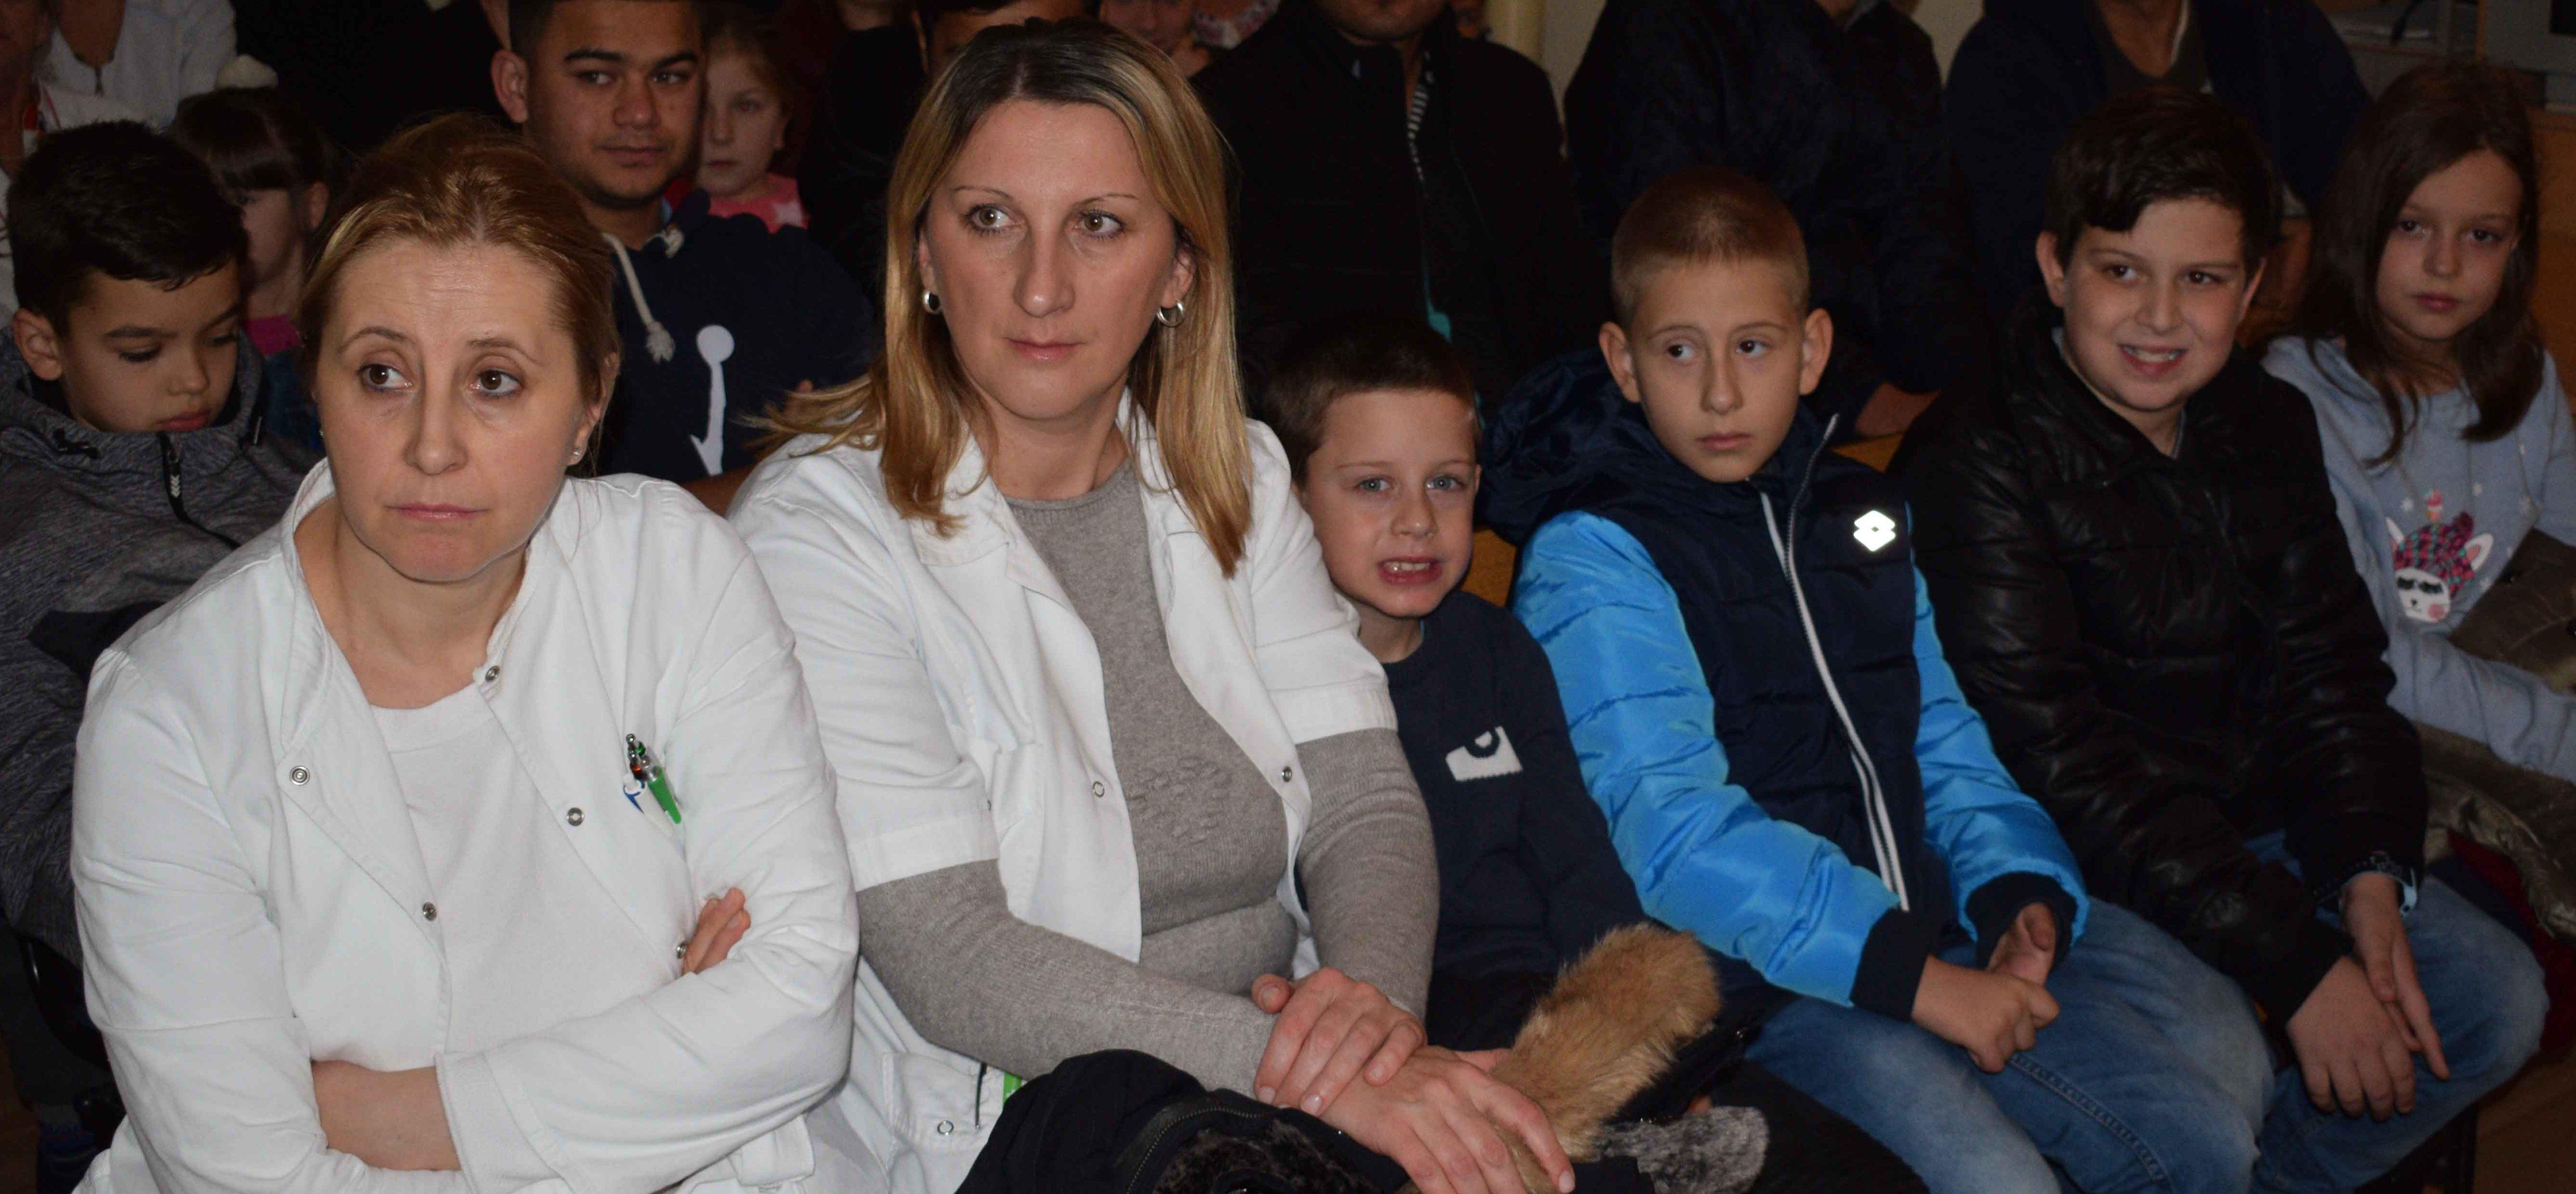 Workshop for healthy growing up of children held in Sjenica